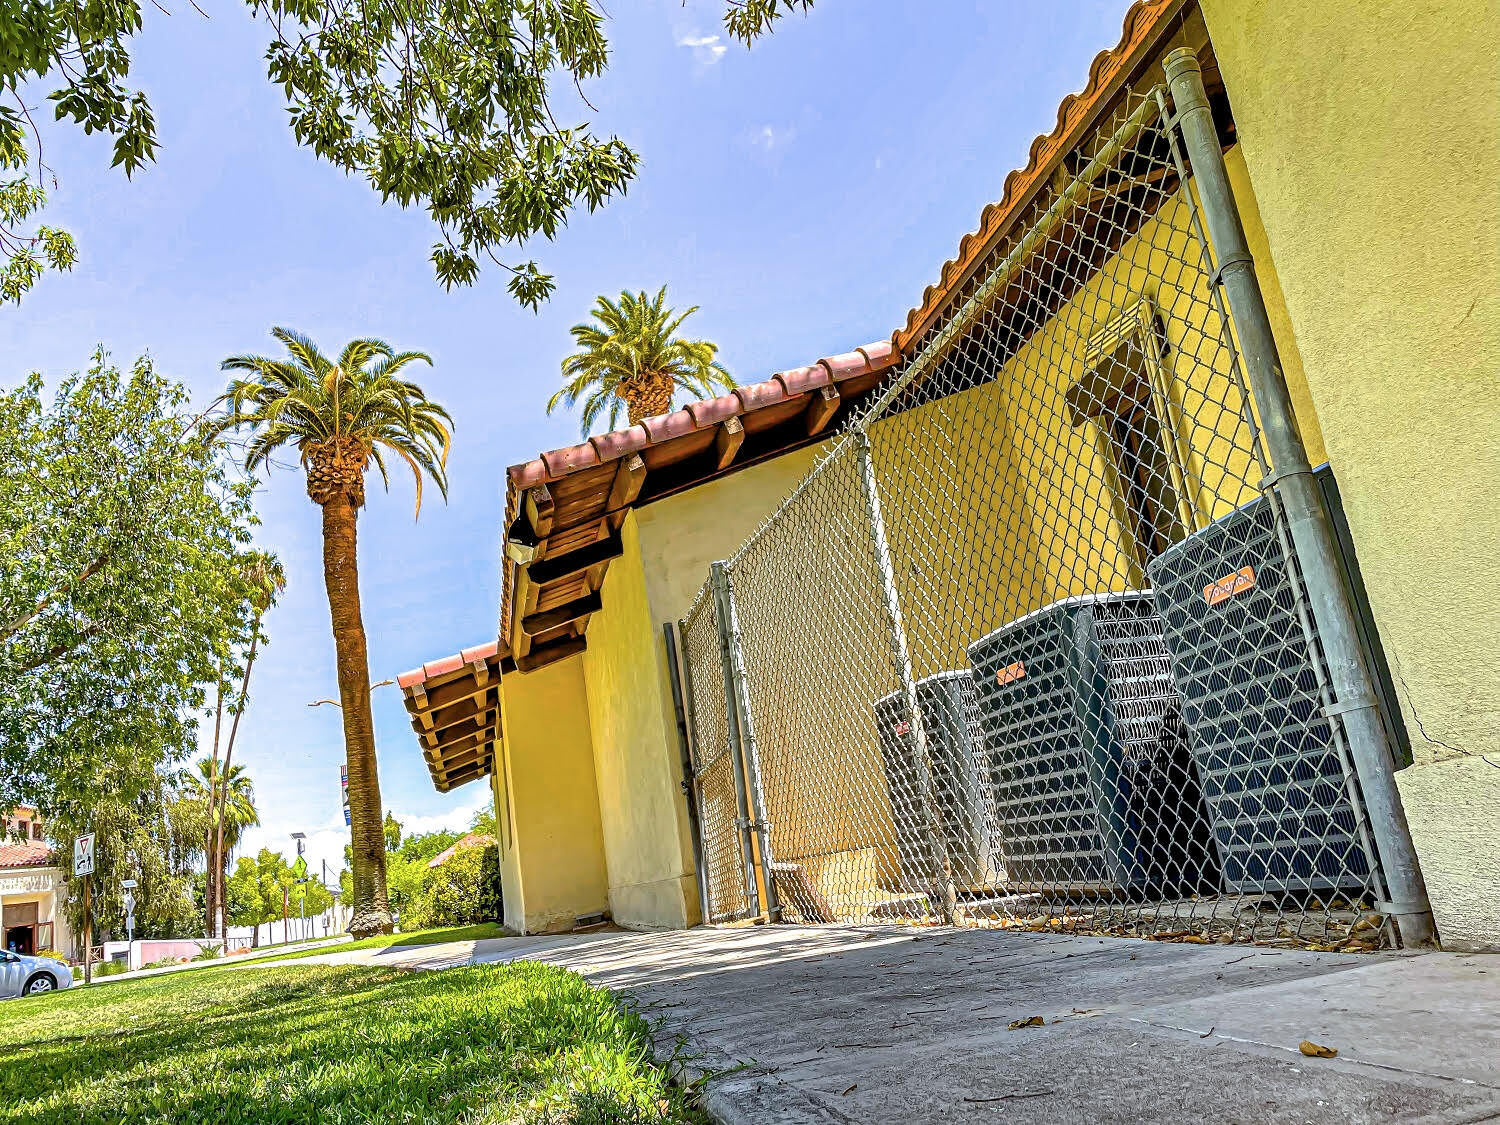 VALLEY BRIEFS: City purchases 12 new A/C units for city facilities